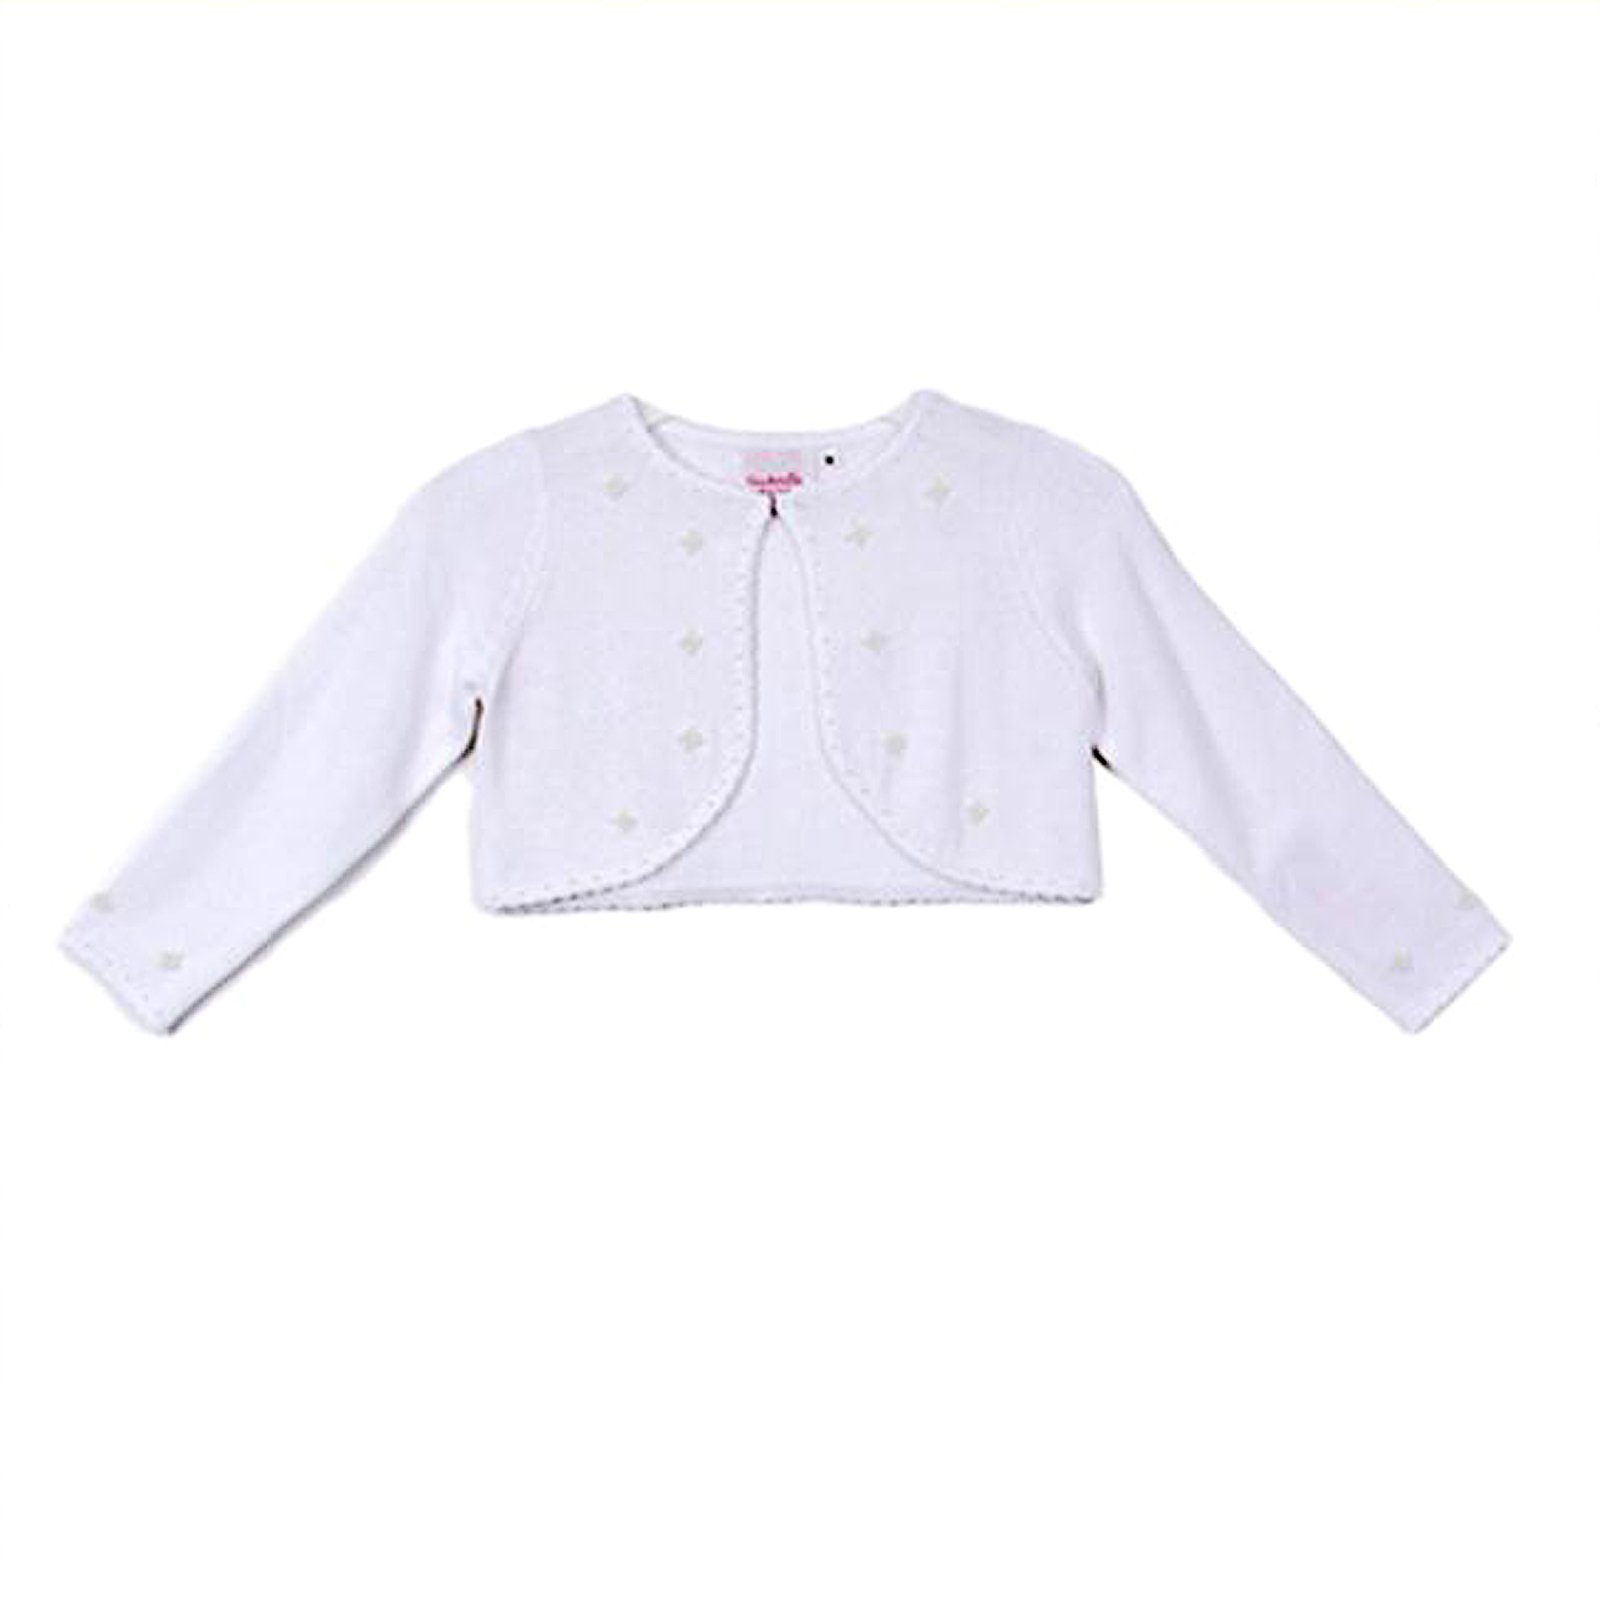 Classy 3010 White Pearl Beaded Sweater for Girl - Size S (2-4)